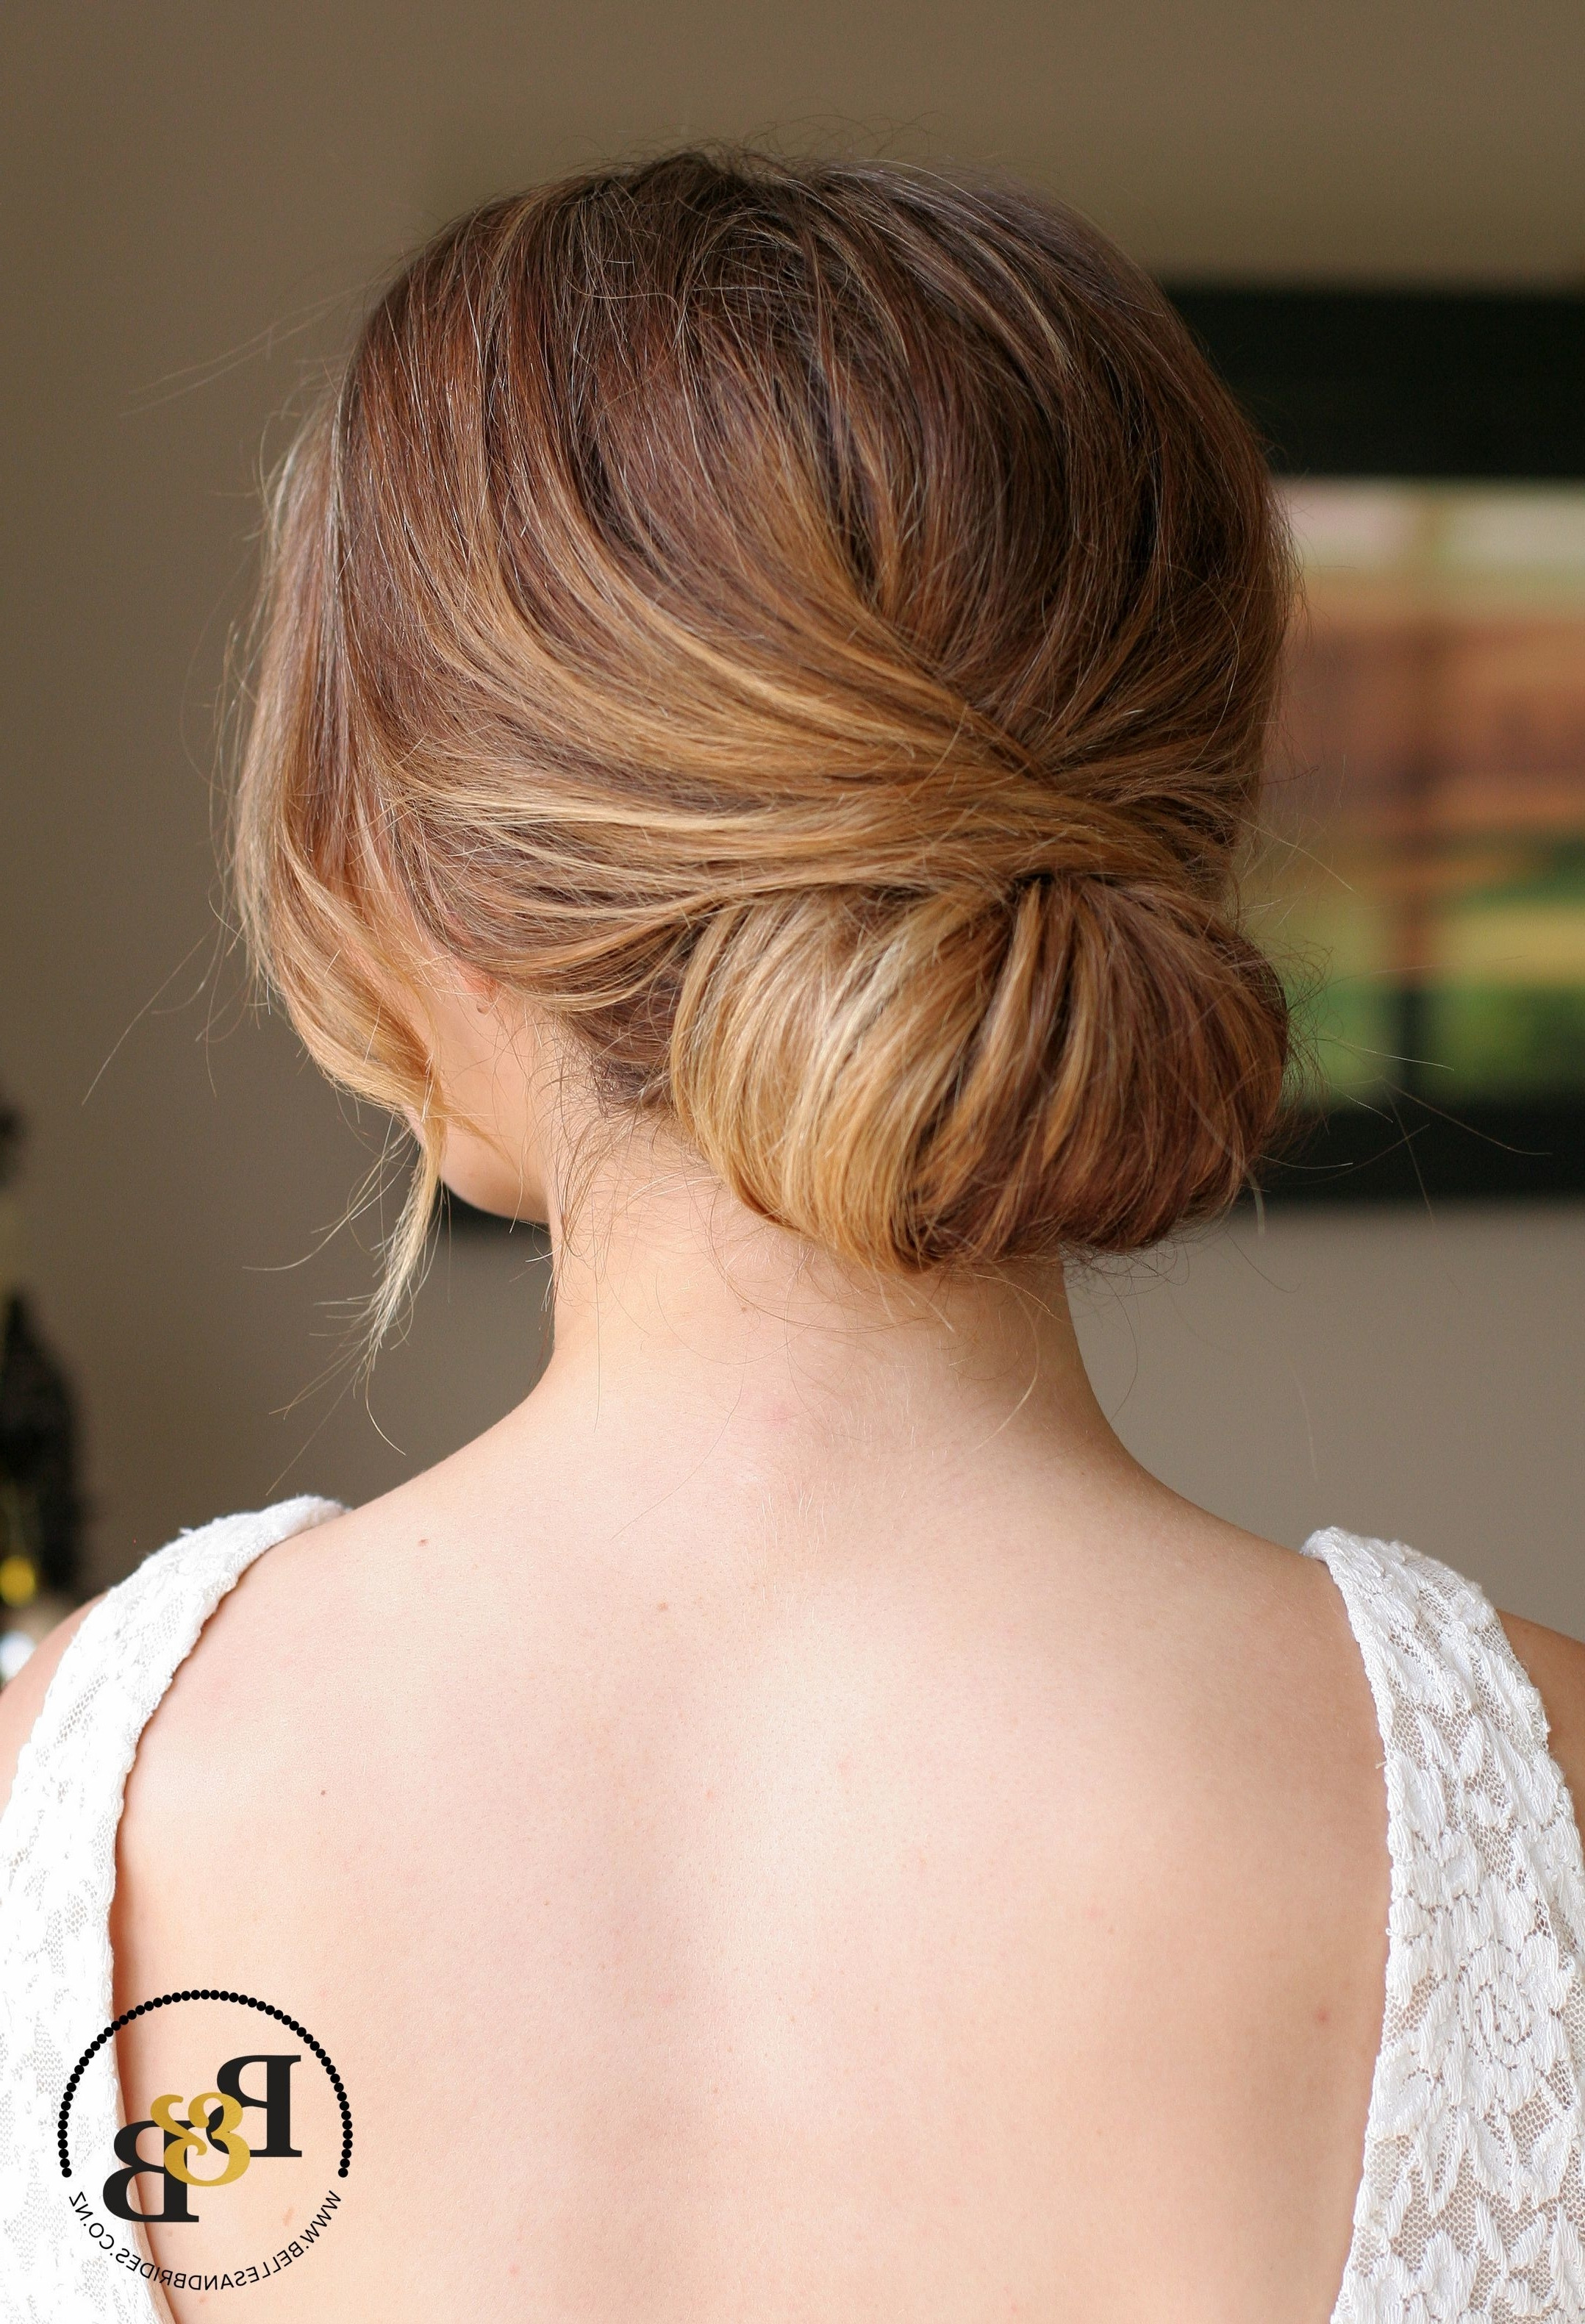 Wedding Hair Low Chignon / Casual Bridal Chignon / Soft Romantic Inside Most Up To Date Chignon Wedding Hairstyles (View 2 of 15)